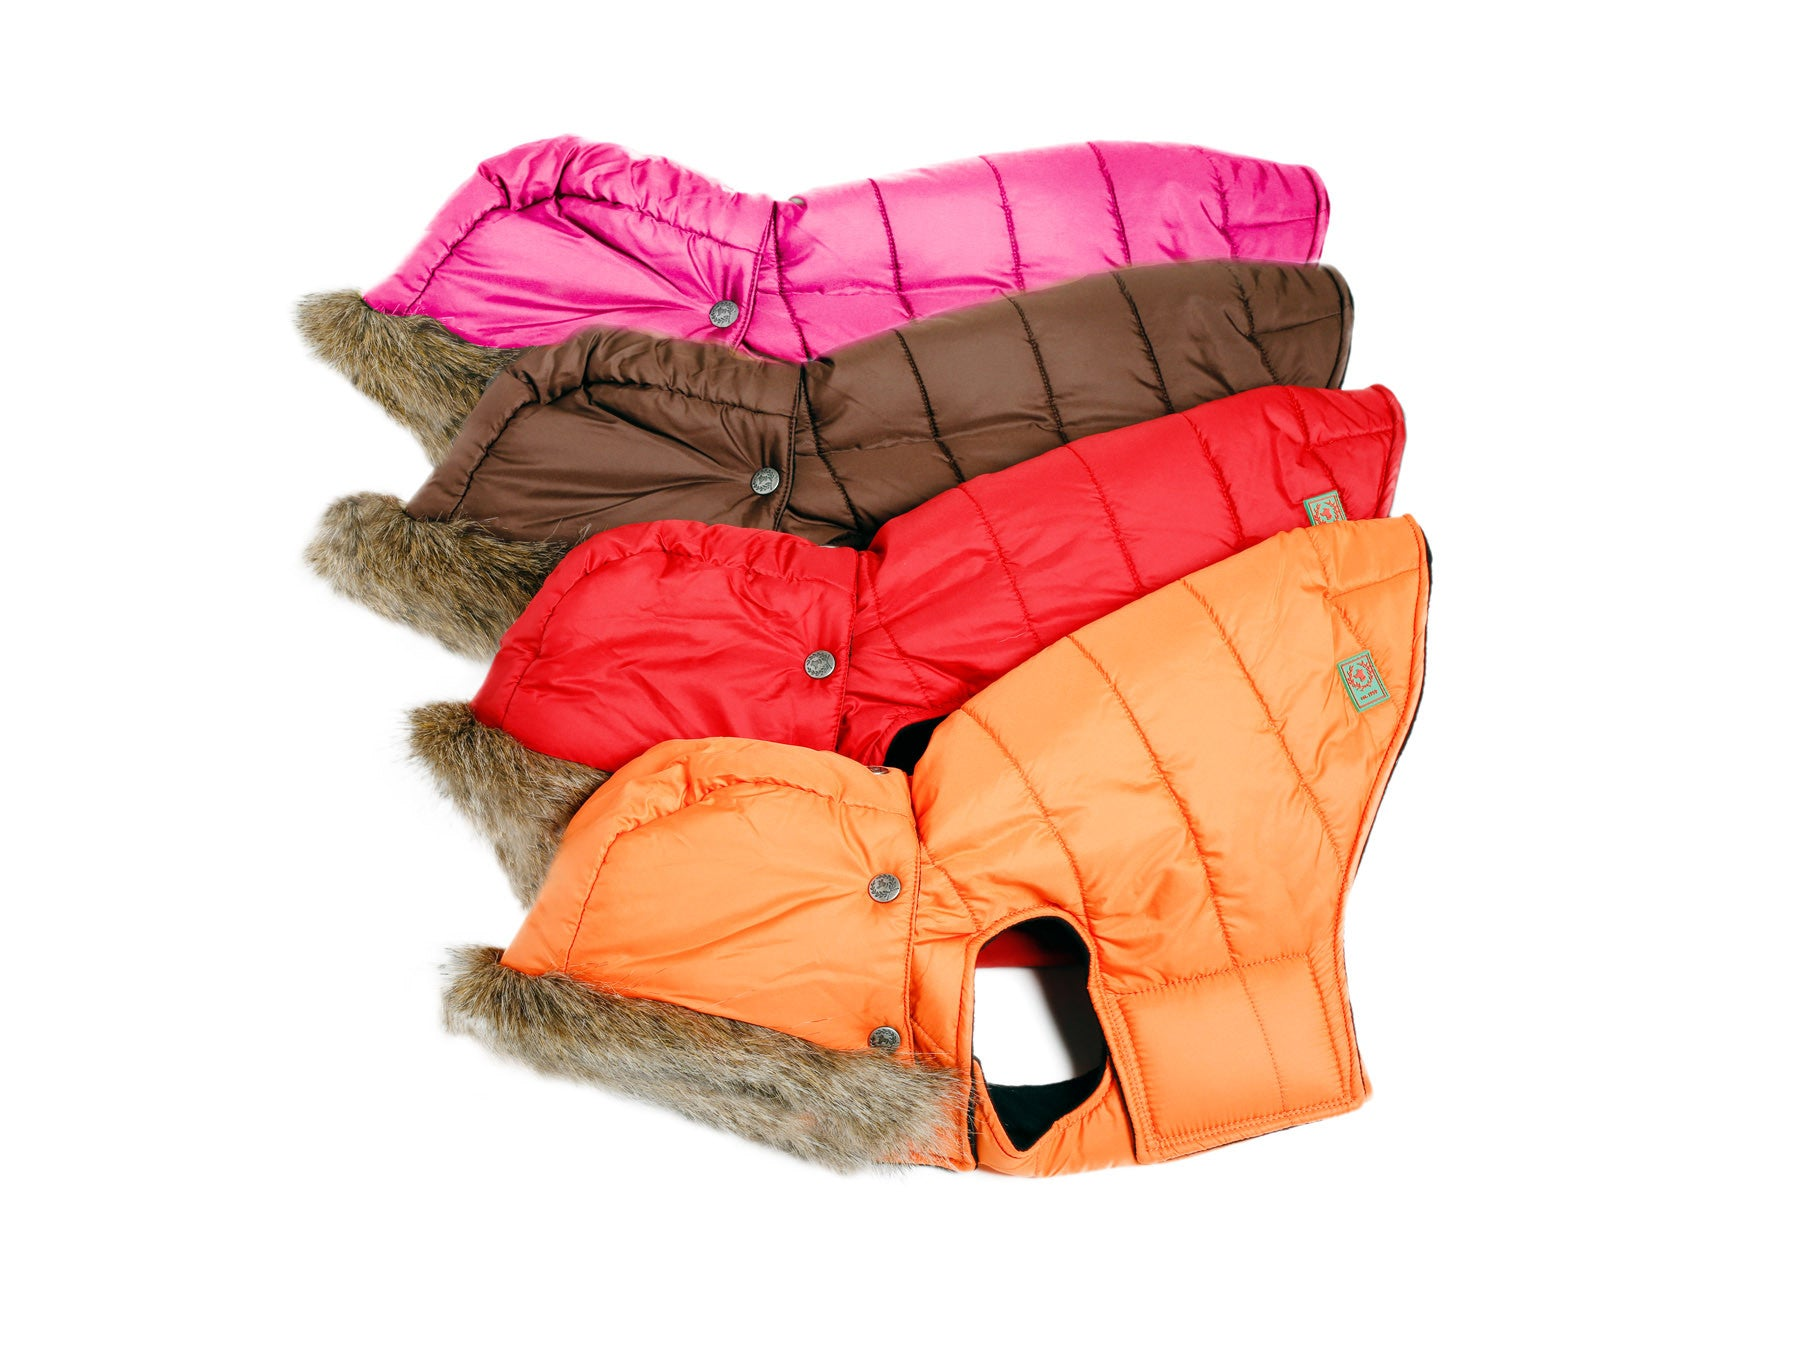 Hooded Parka, Pink, Red, Orange, Brown - Aspen Collection